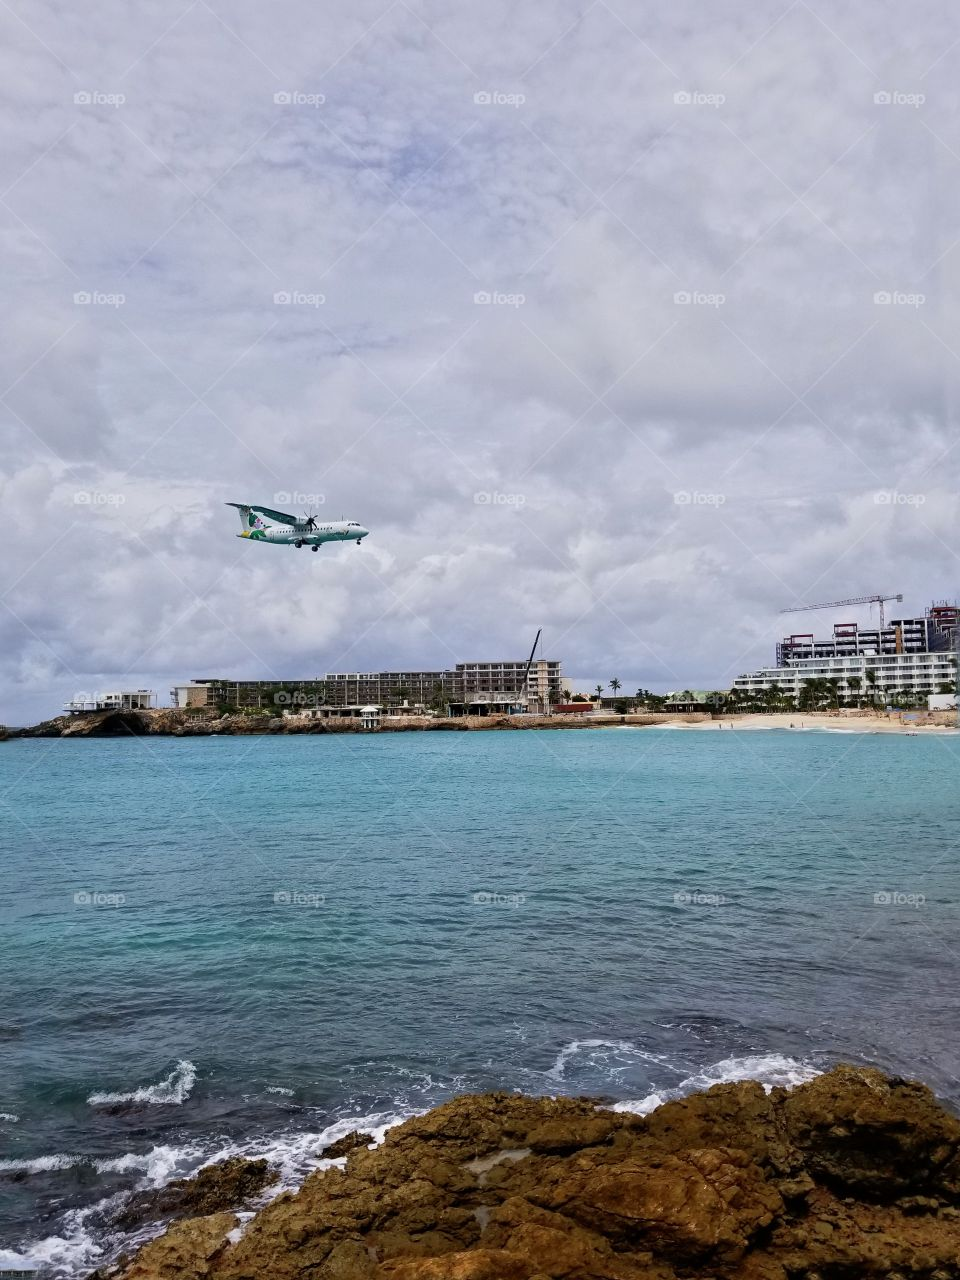 Airantilles coming in for a landing at Maho beach St Maarten